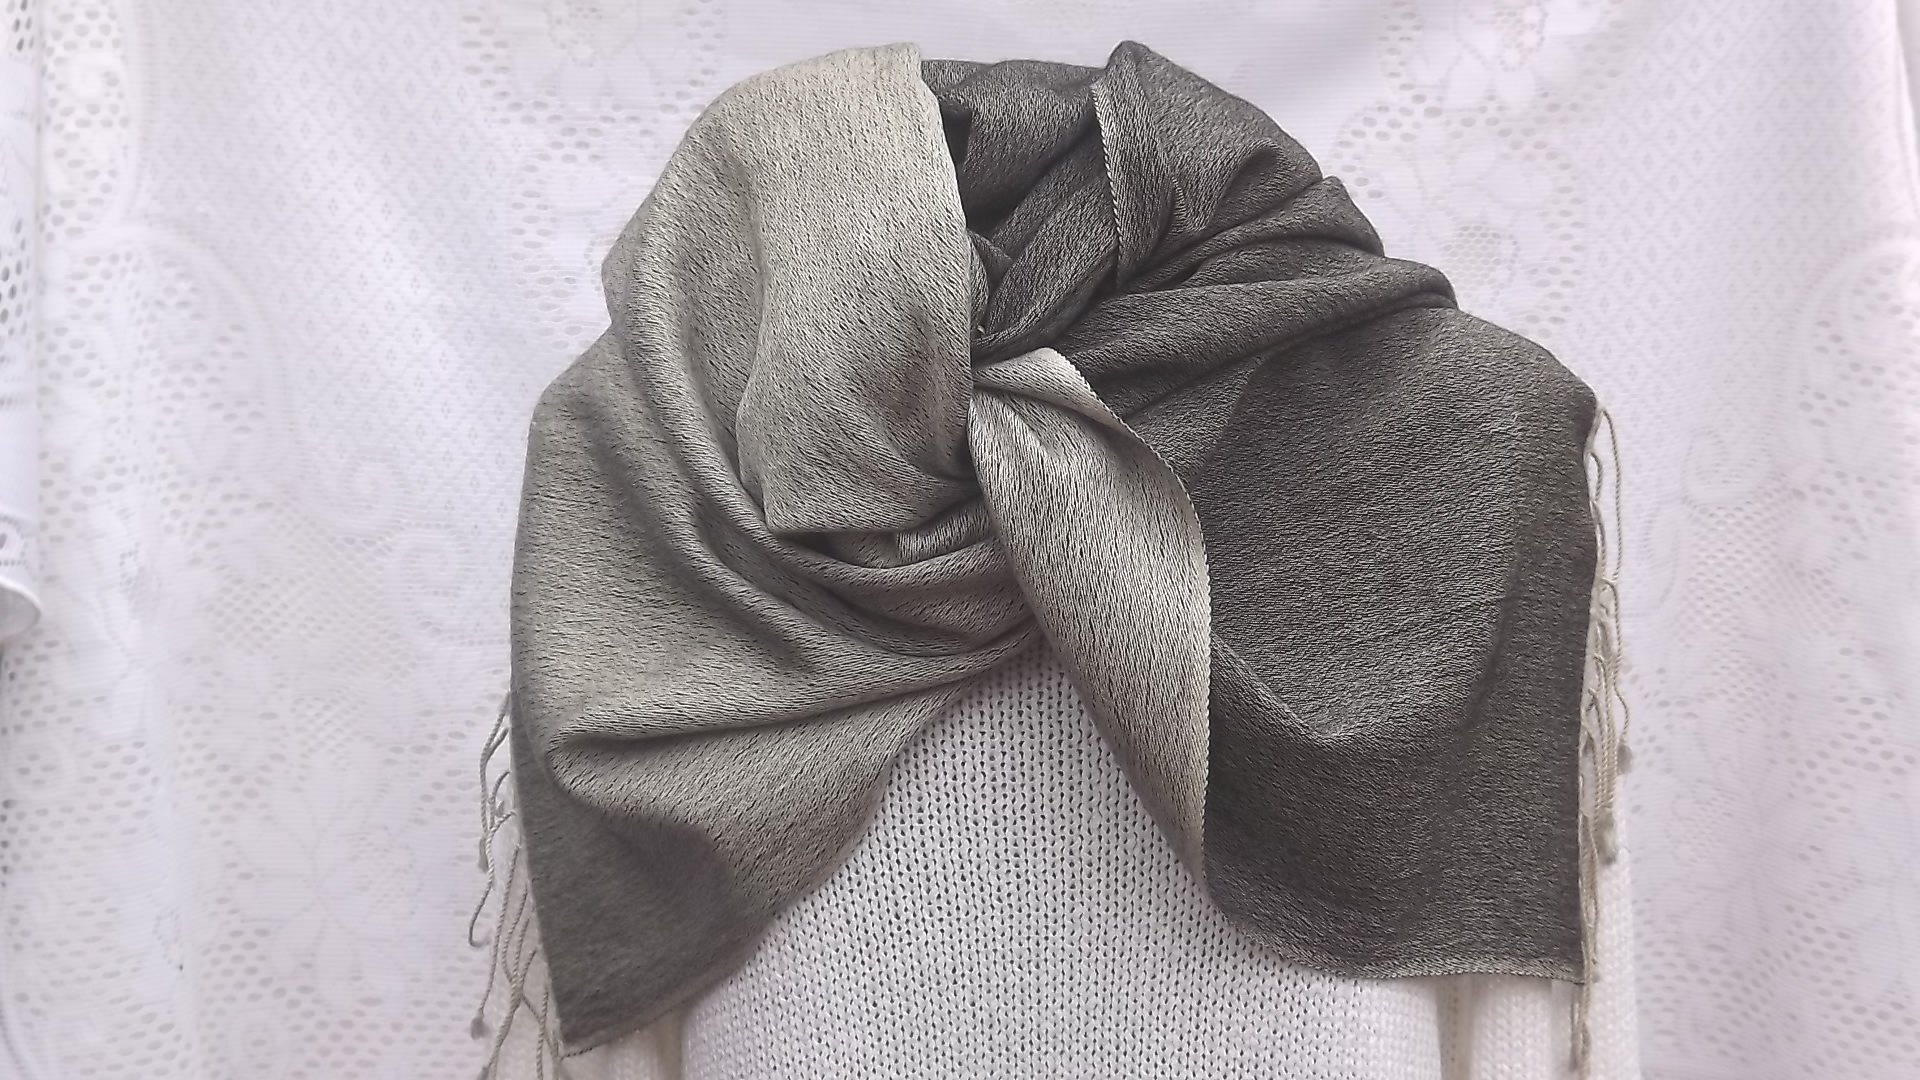 Silver pashmina wraps, scarves, stoles and shawls, silver pashmina scarf, Silver cashmere pashmina scarves, Silver cashmere pashmina wraps, Silver cashmere pashmina stoles, Silver cashmere pashmina shawls, perfect Silver cashmere pashmina, silver pashmina scarves, silver pashmina wraps, silver pashmina stoles, silver pashmina shawls, perfect silver pashmina